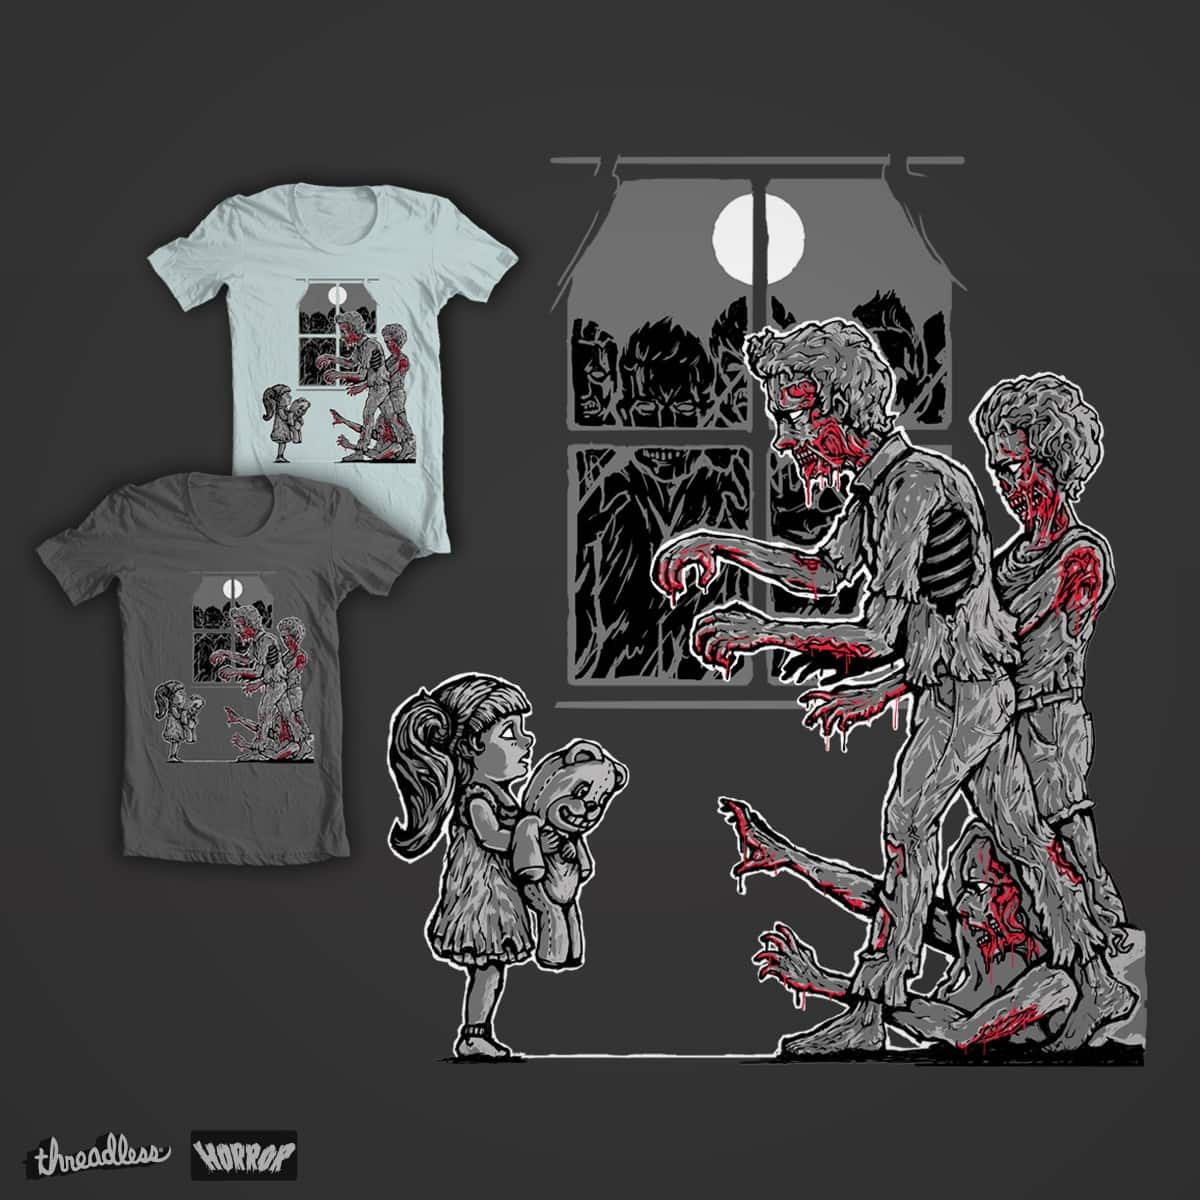 Last Night by Villainmazk on Threadless